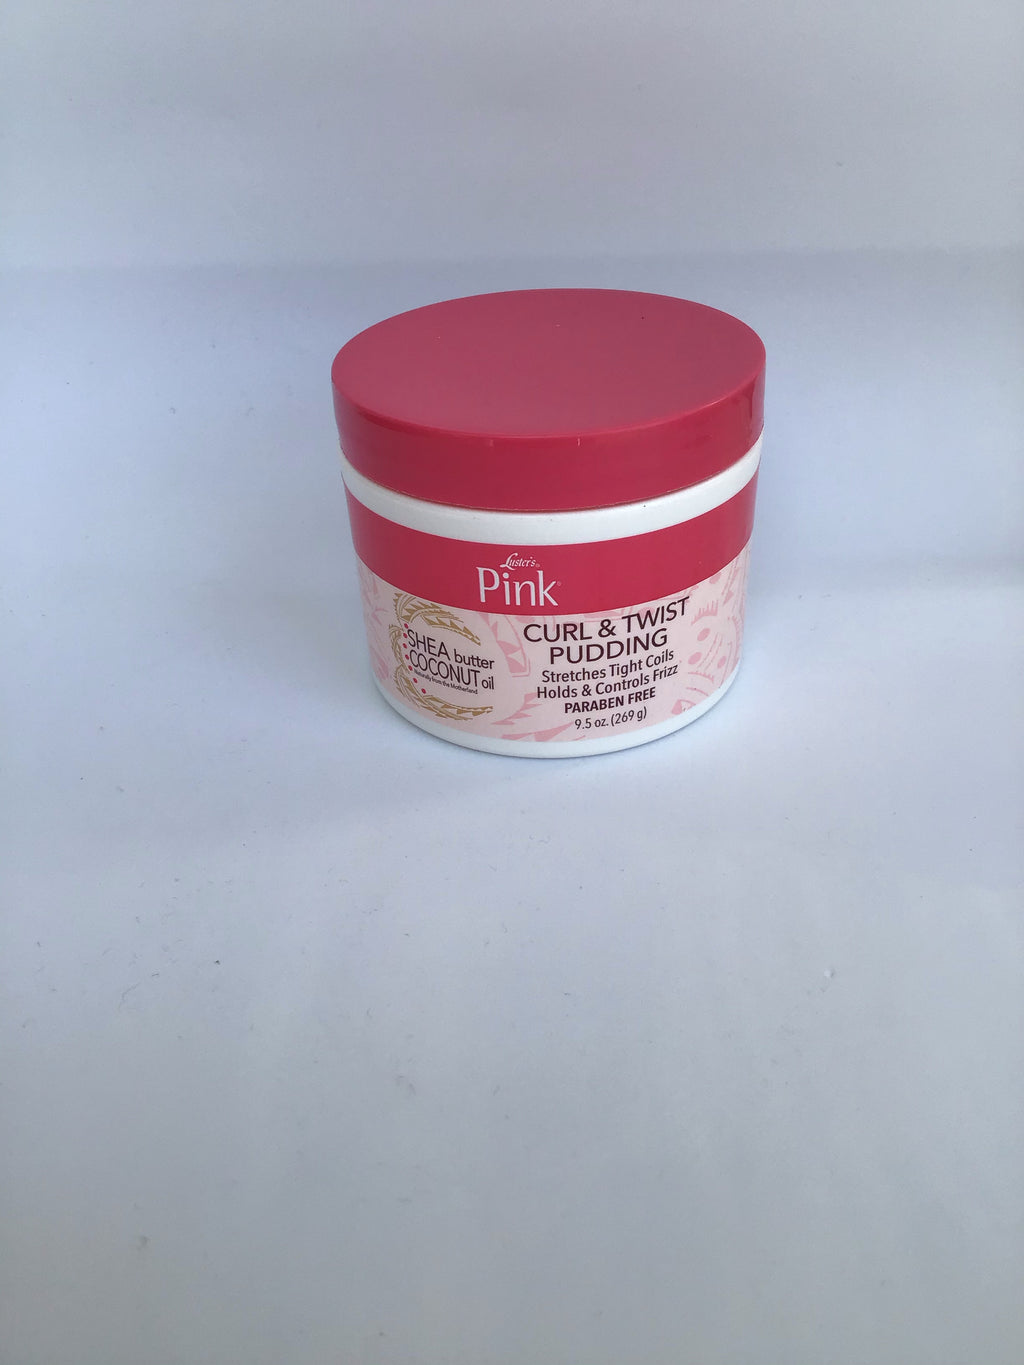 LUSTER'S PINK SHEA BUTTER COCONUT OIL CURL & TWIST PUDDING